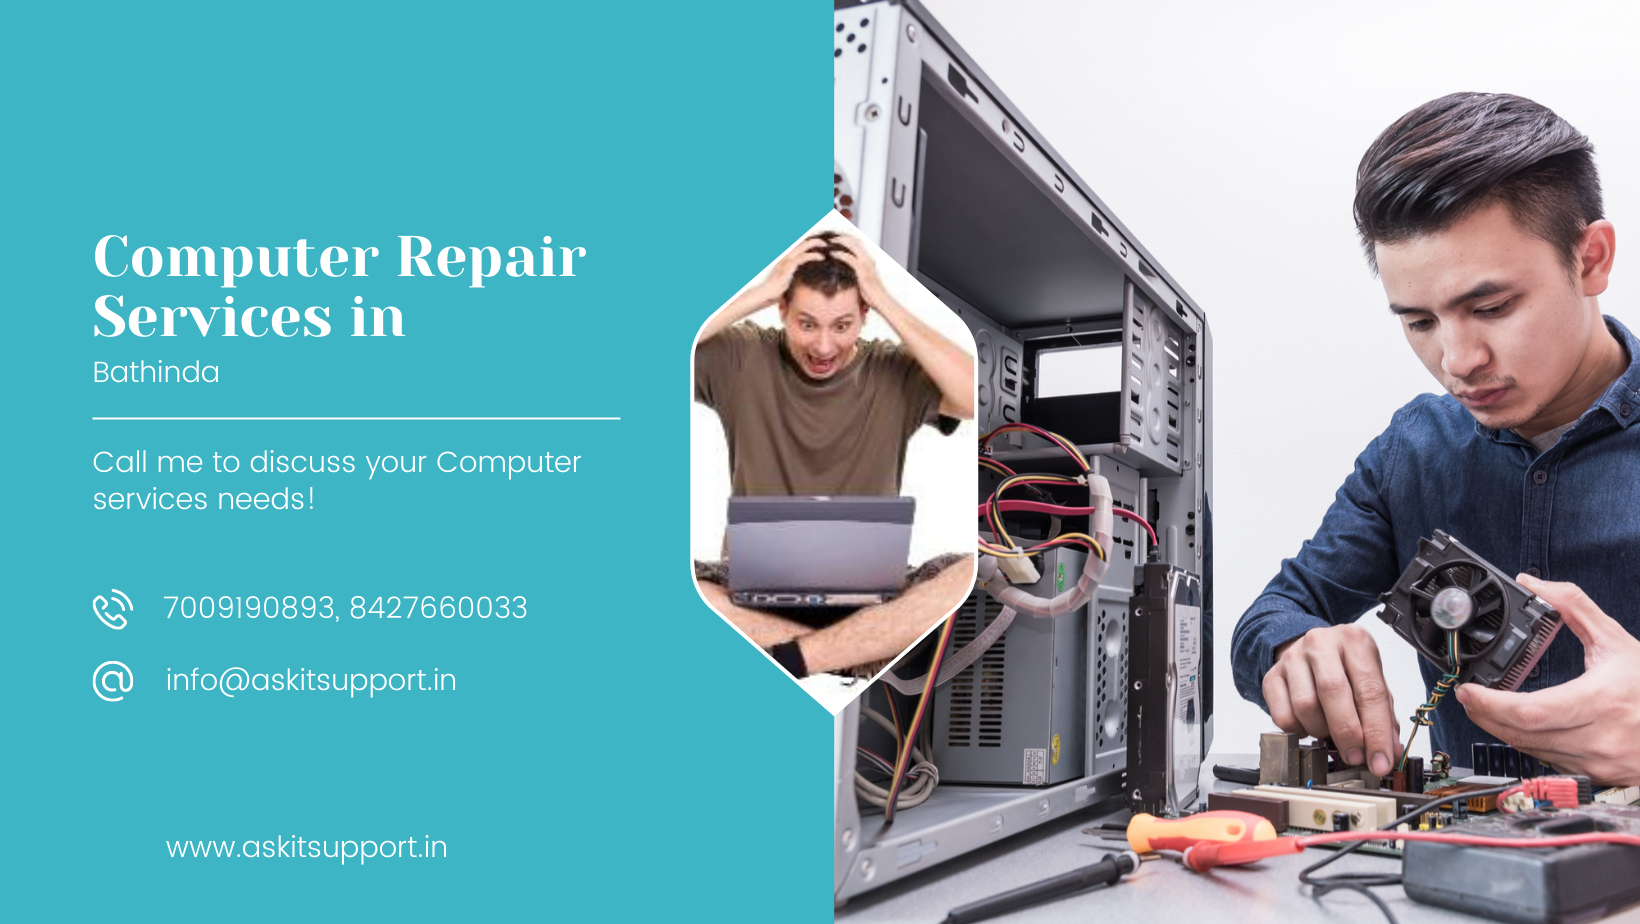 ASK IT SUPPORT